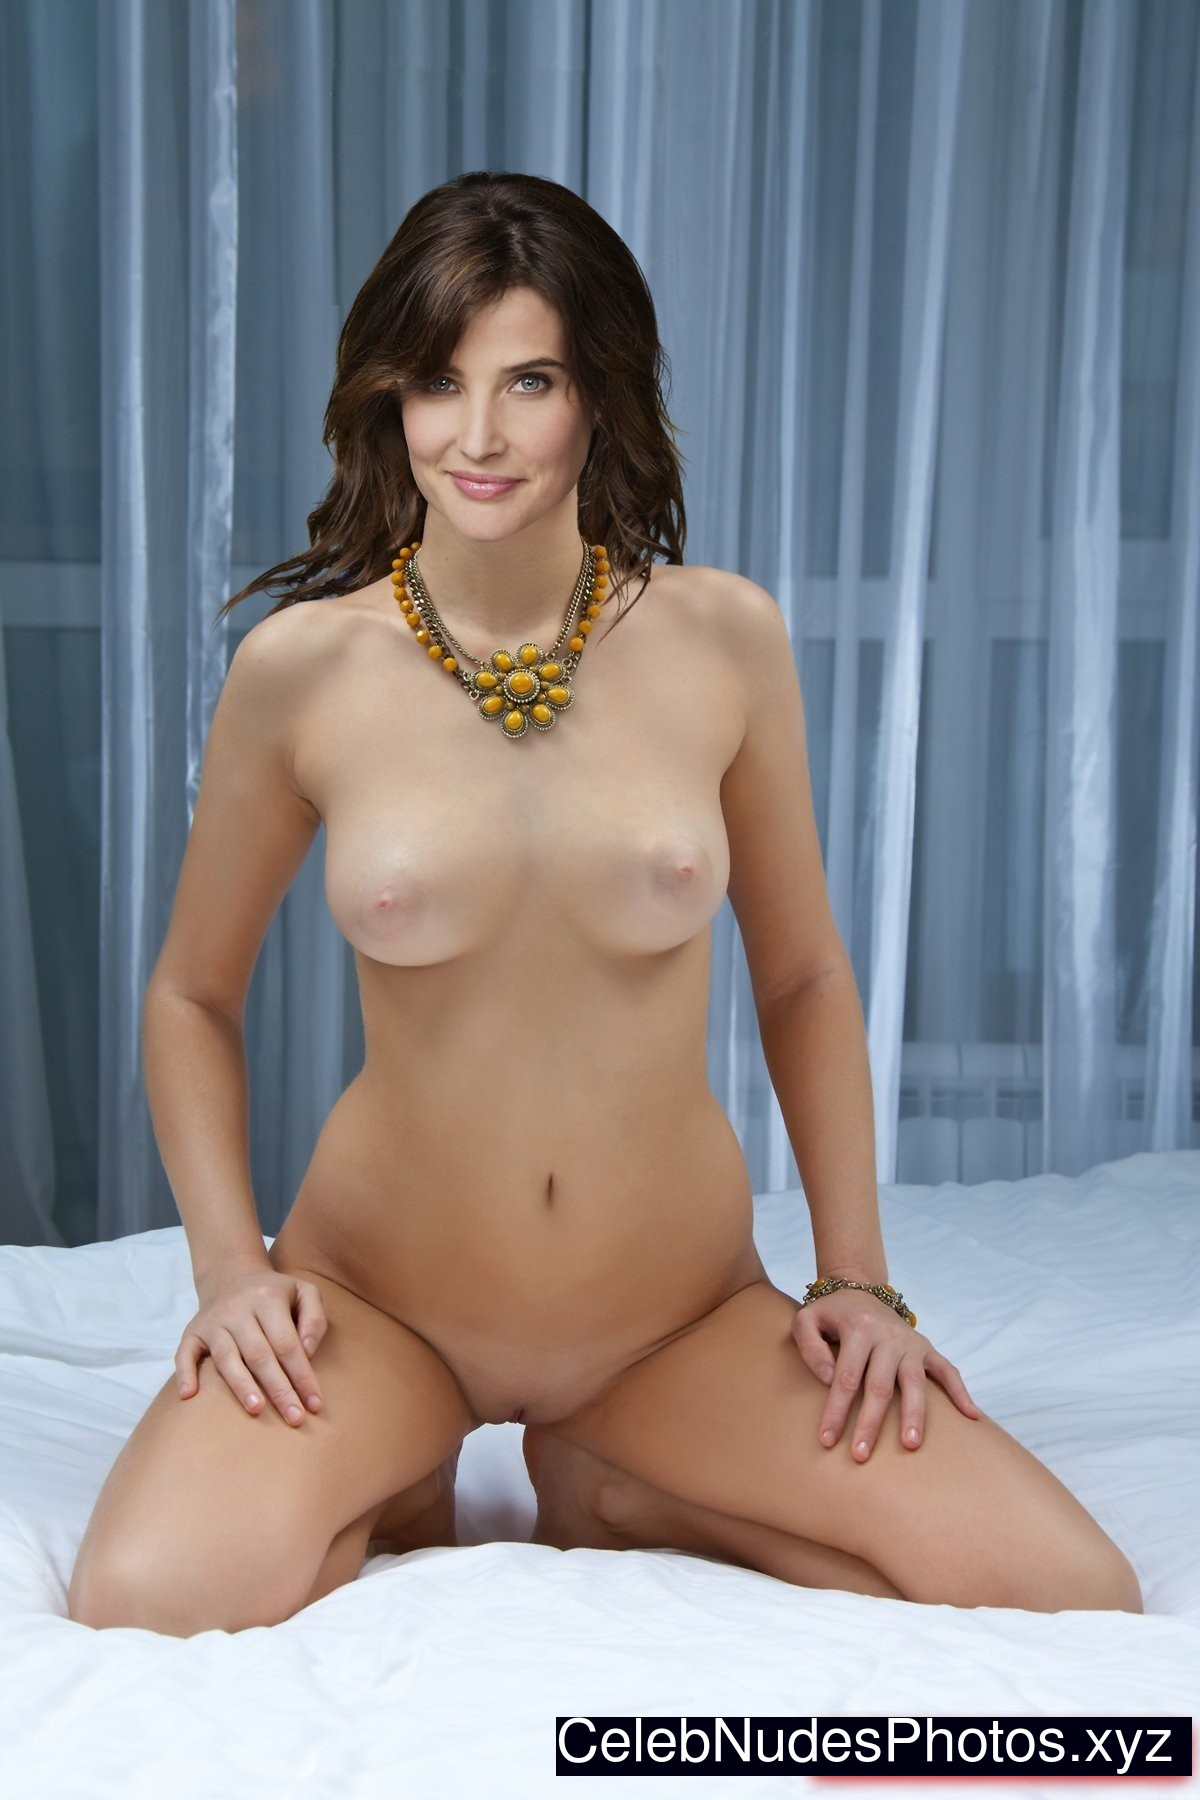 cobie smulders nude photos